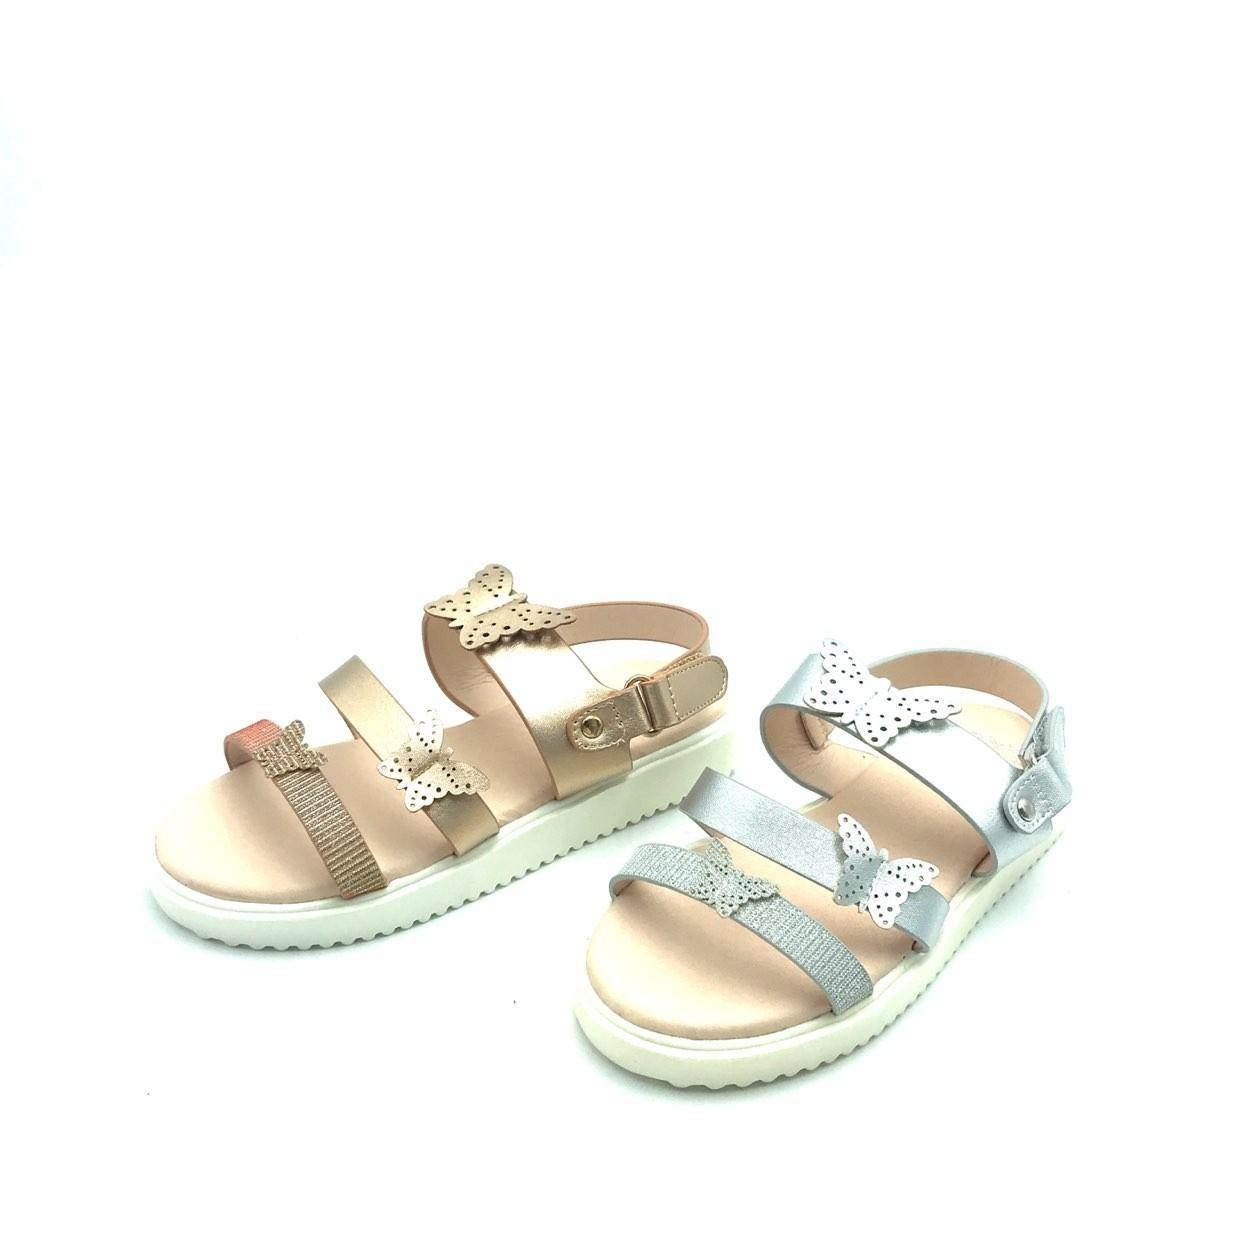 Gold Sandal 9096 Max Shoes France (Χρυσό) (Νο 31-35)